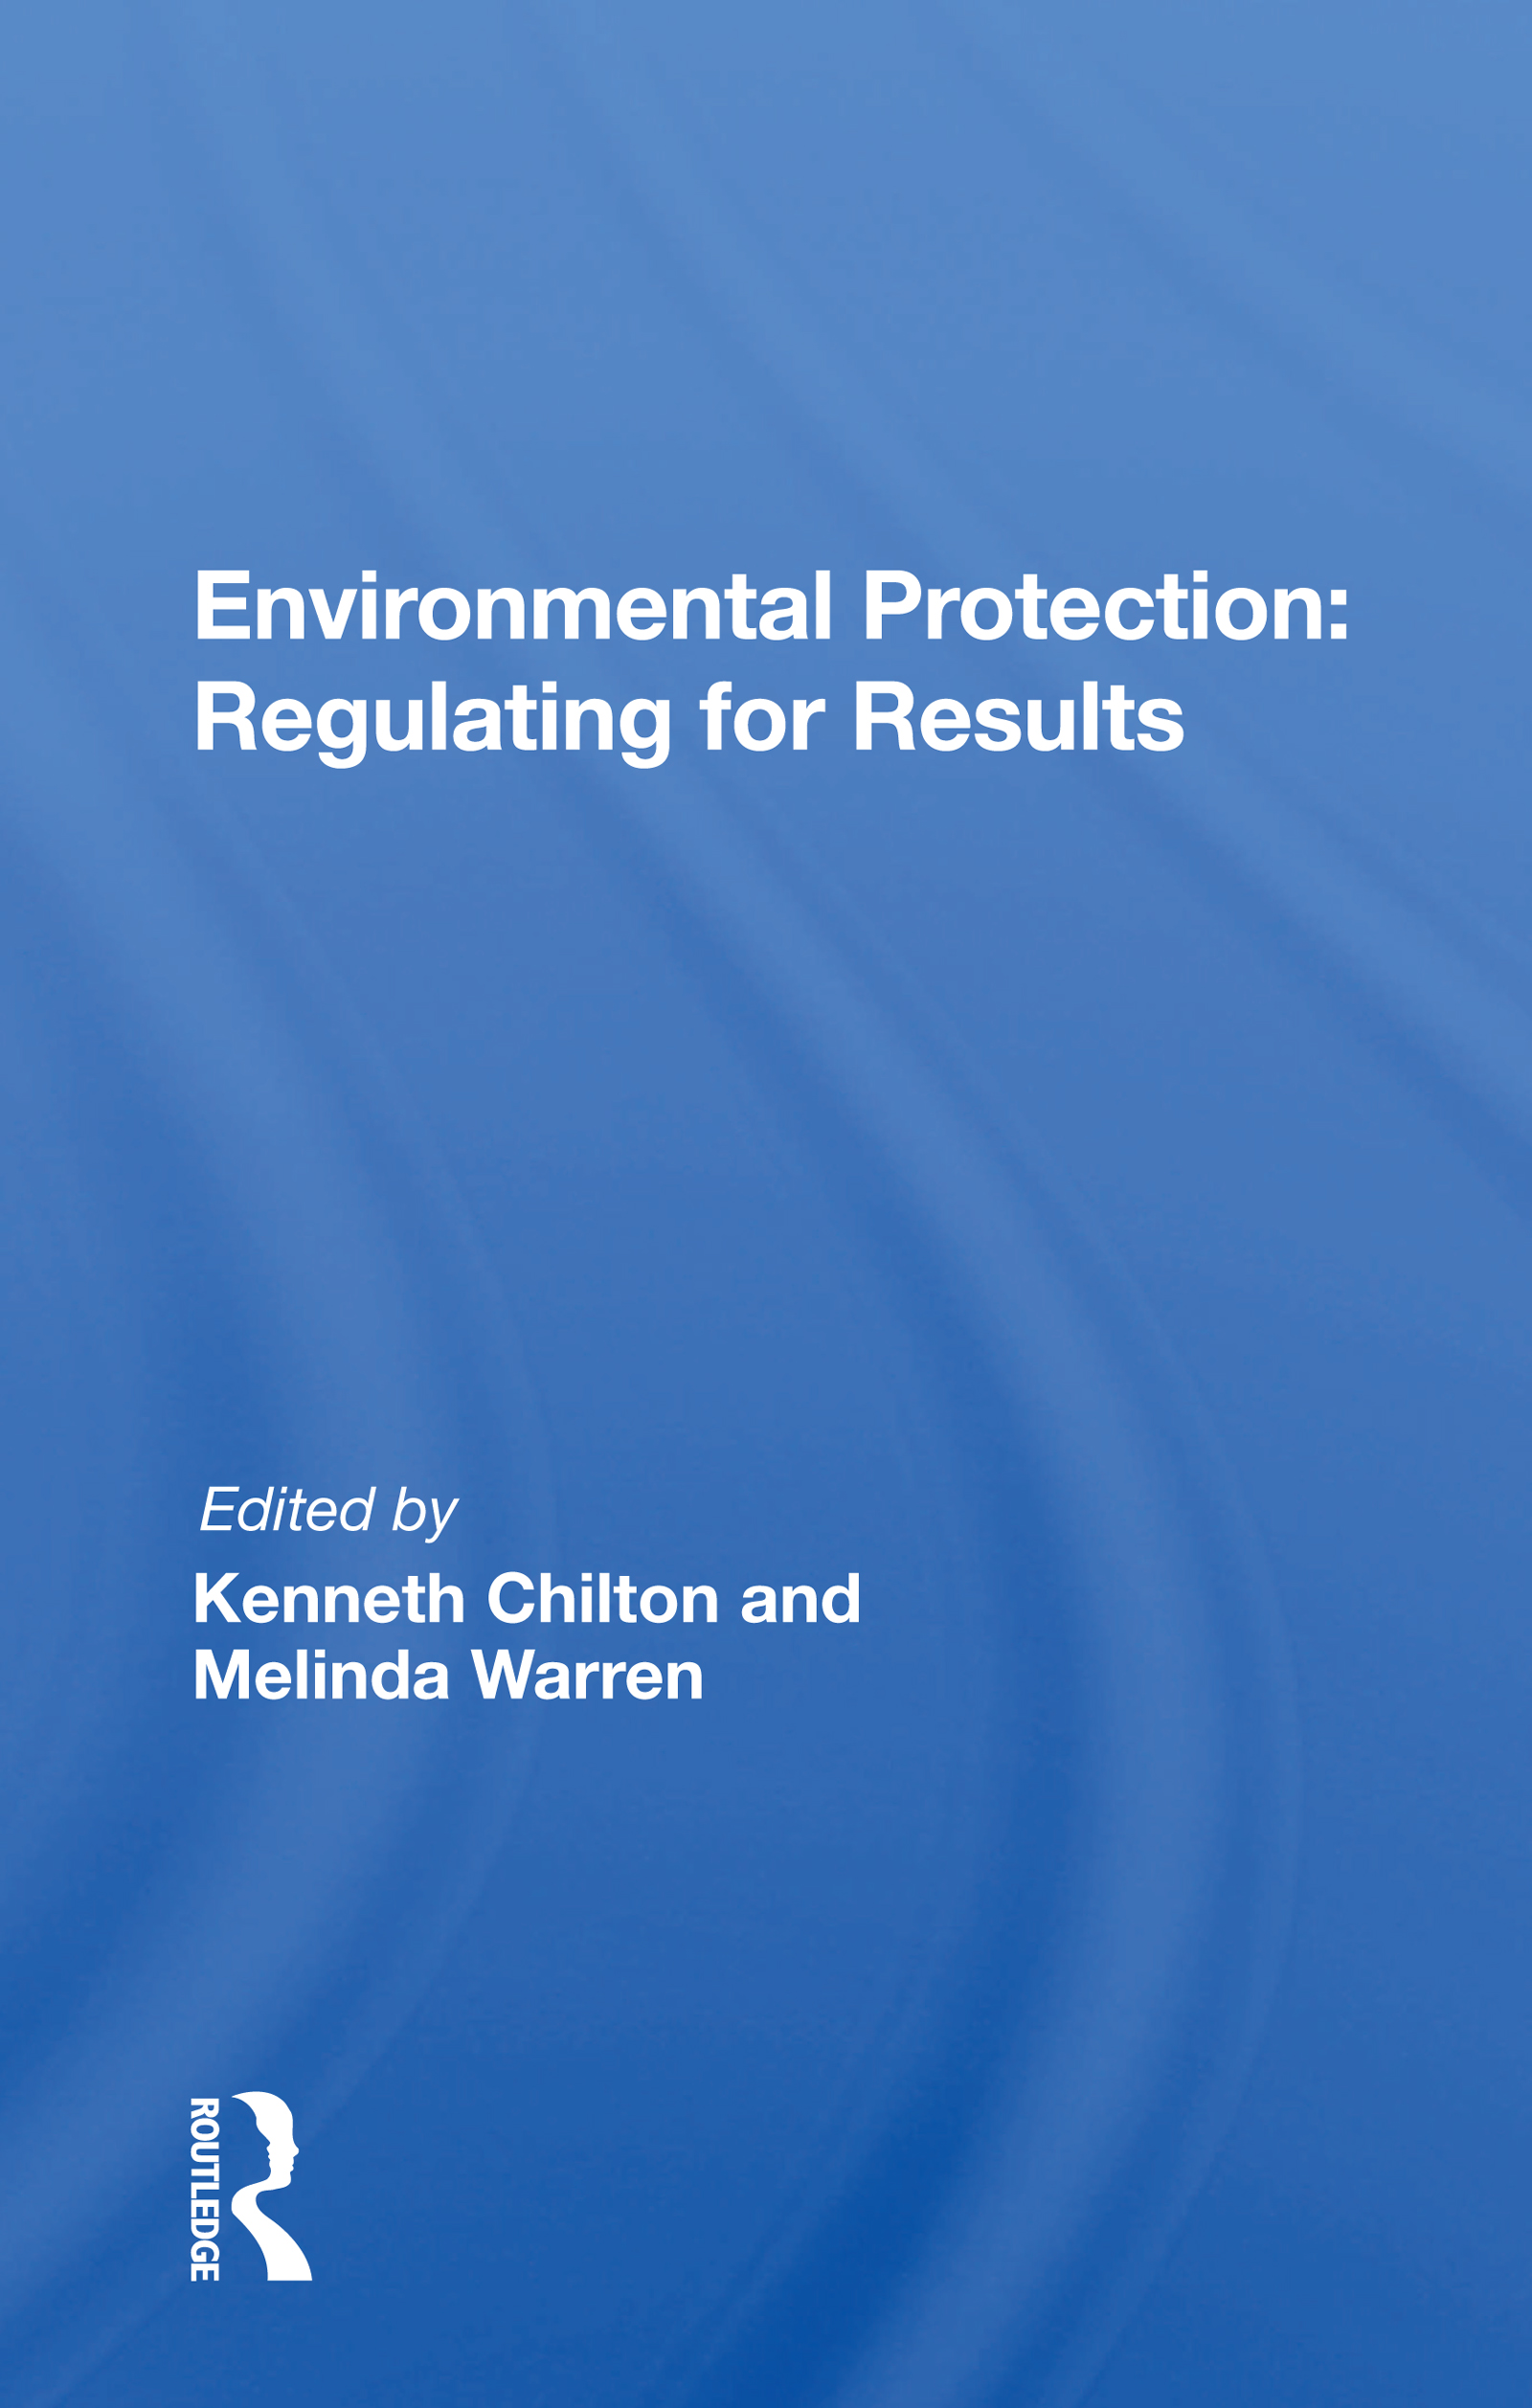 Environmental Protection: Regulating for Results